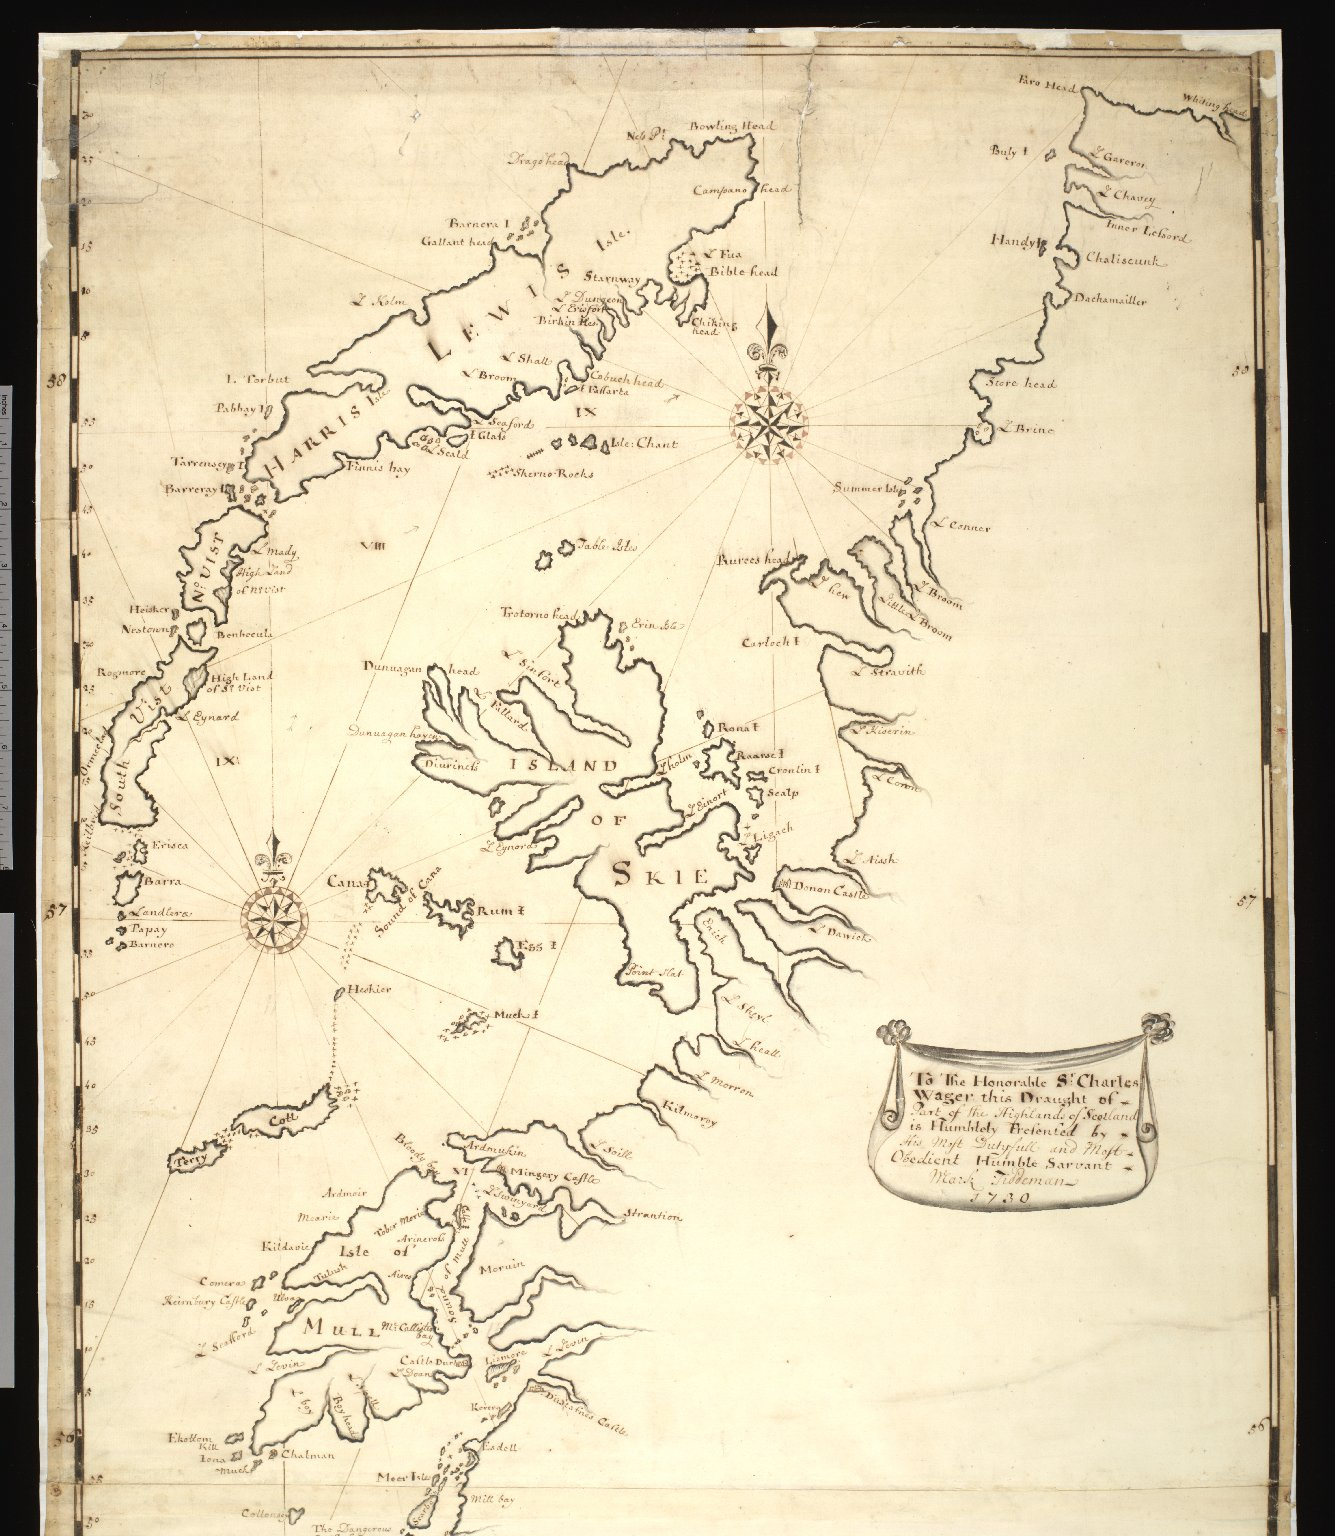 Draught of Part of the Highlands of Scotland [2 of 2]